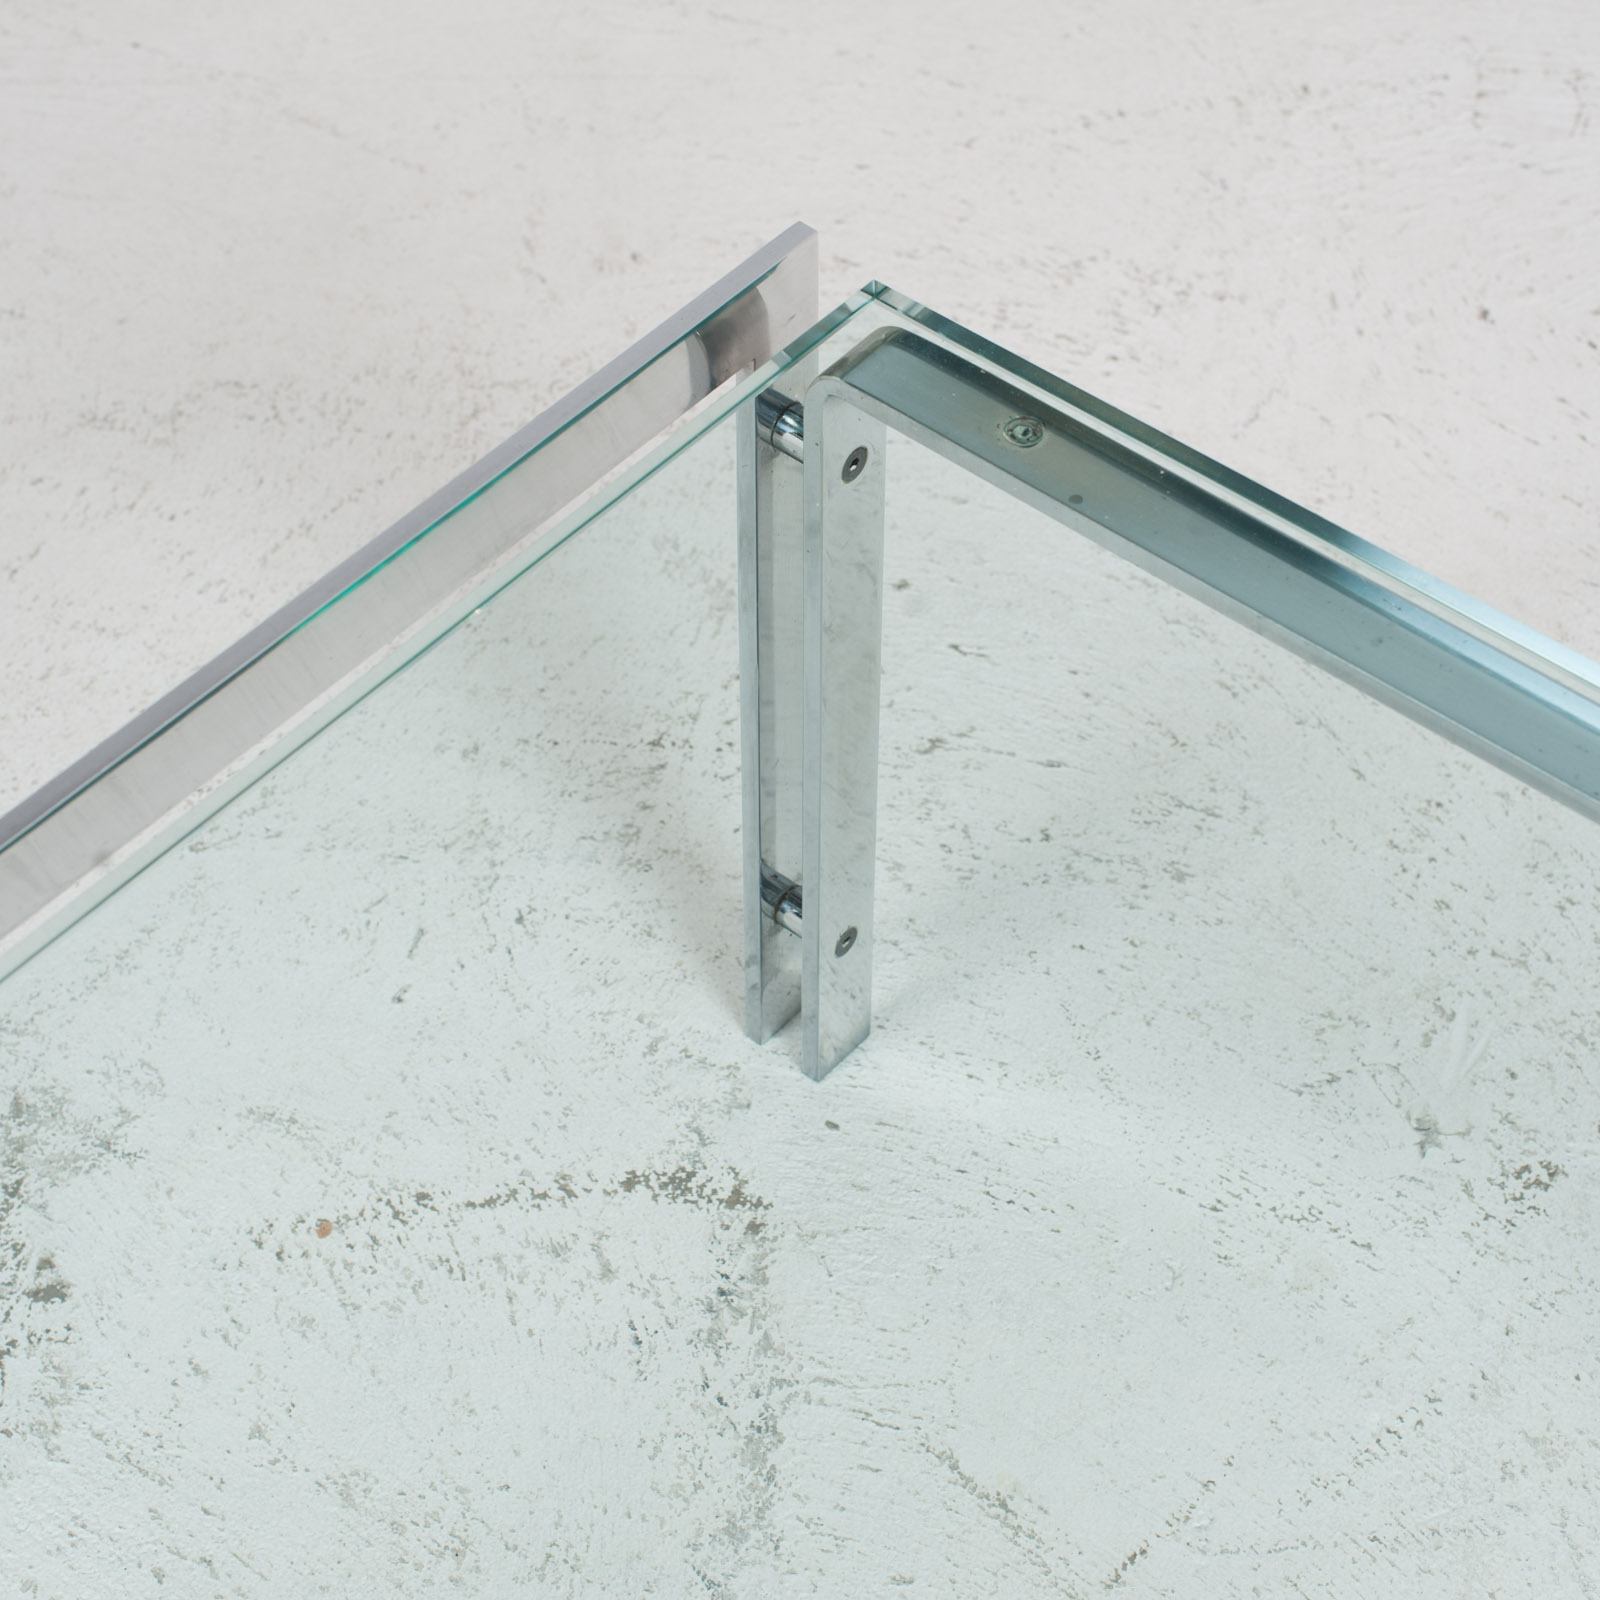 M1 Coffee Table By Hank Kwint For Metaform In Chrome 1970s Netherlands 05